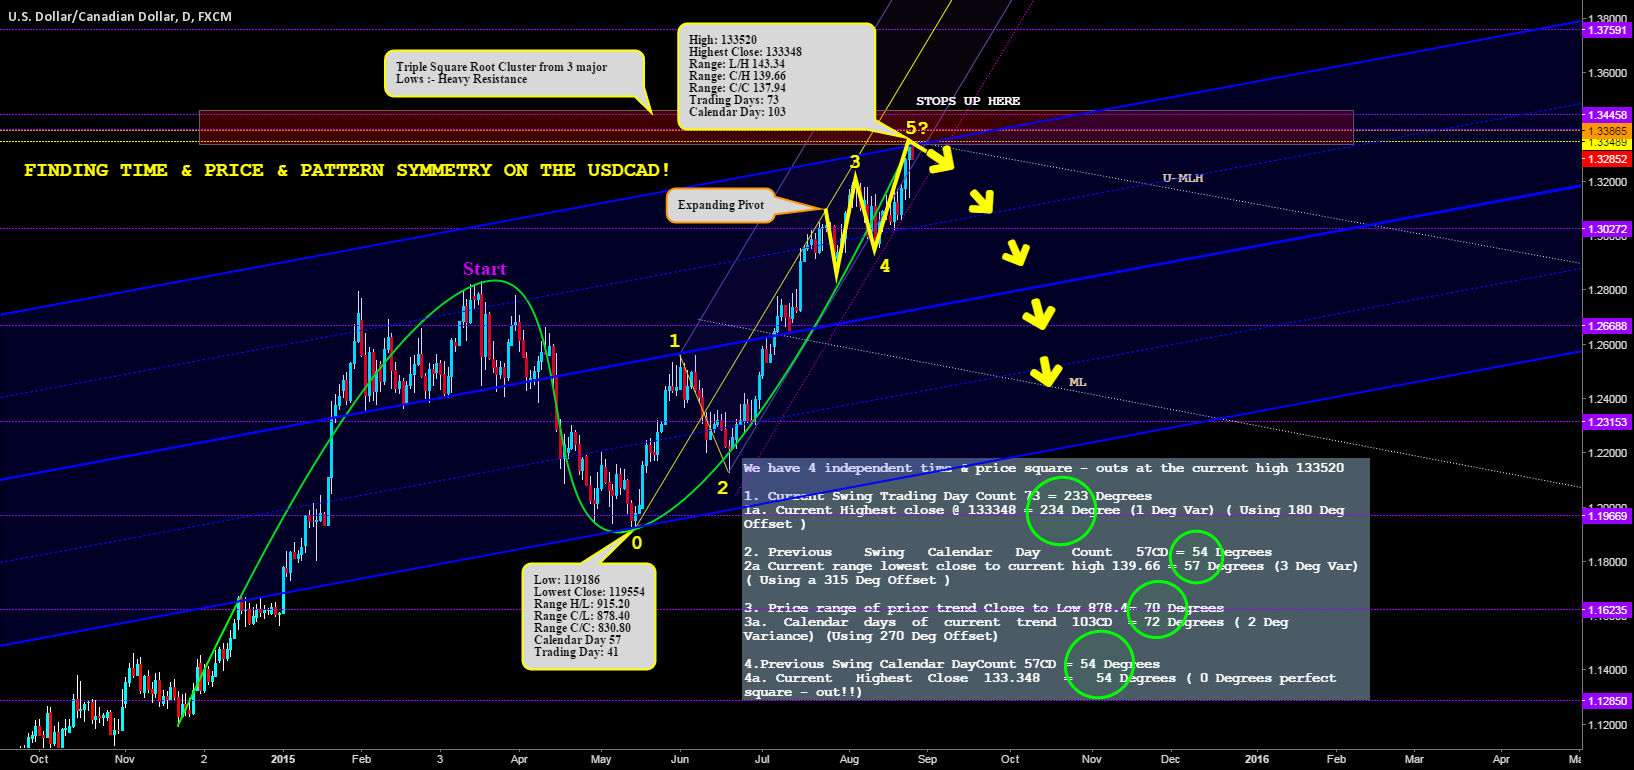 FINDING TIME & PRICE & PATTERN SYMMETRY ON THE USDCAD!